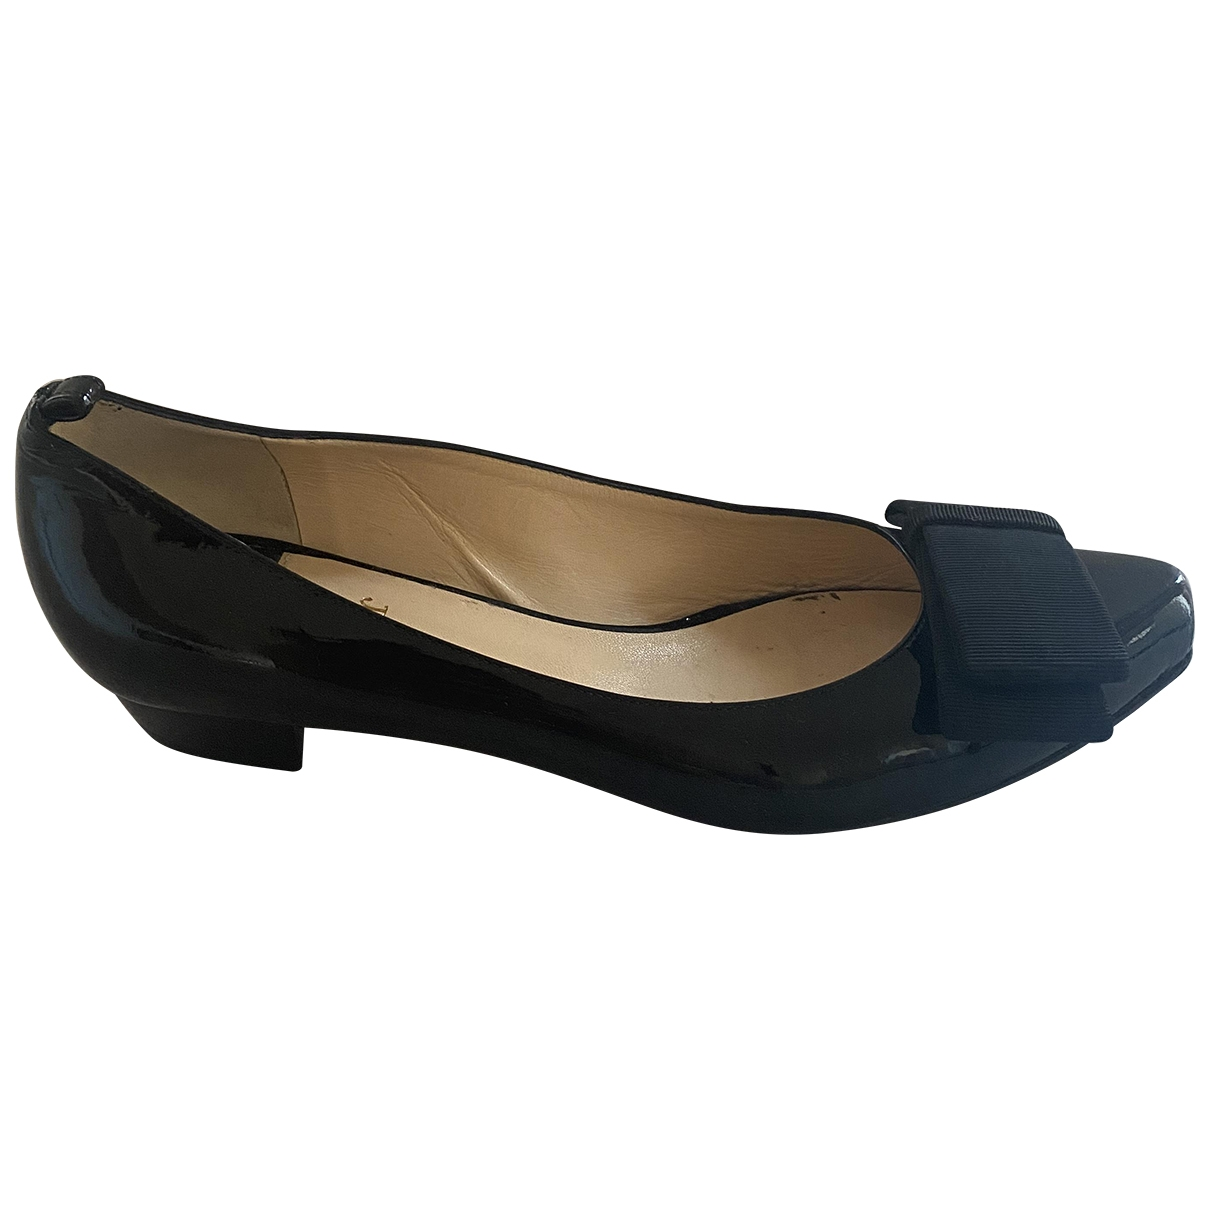 O Jour \N Black Patent leather Ballet flats for Women 37.5 EU